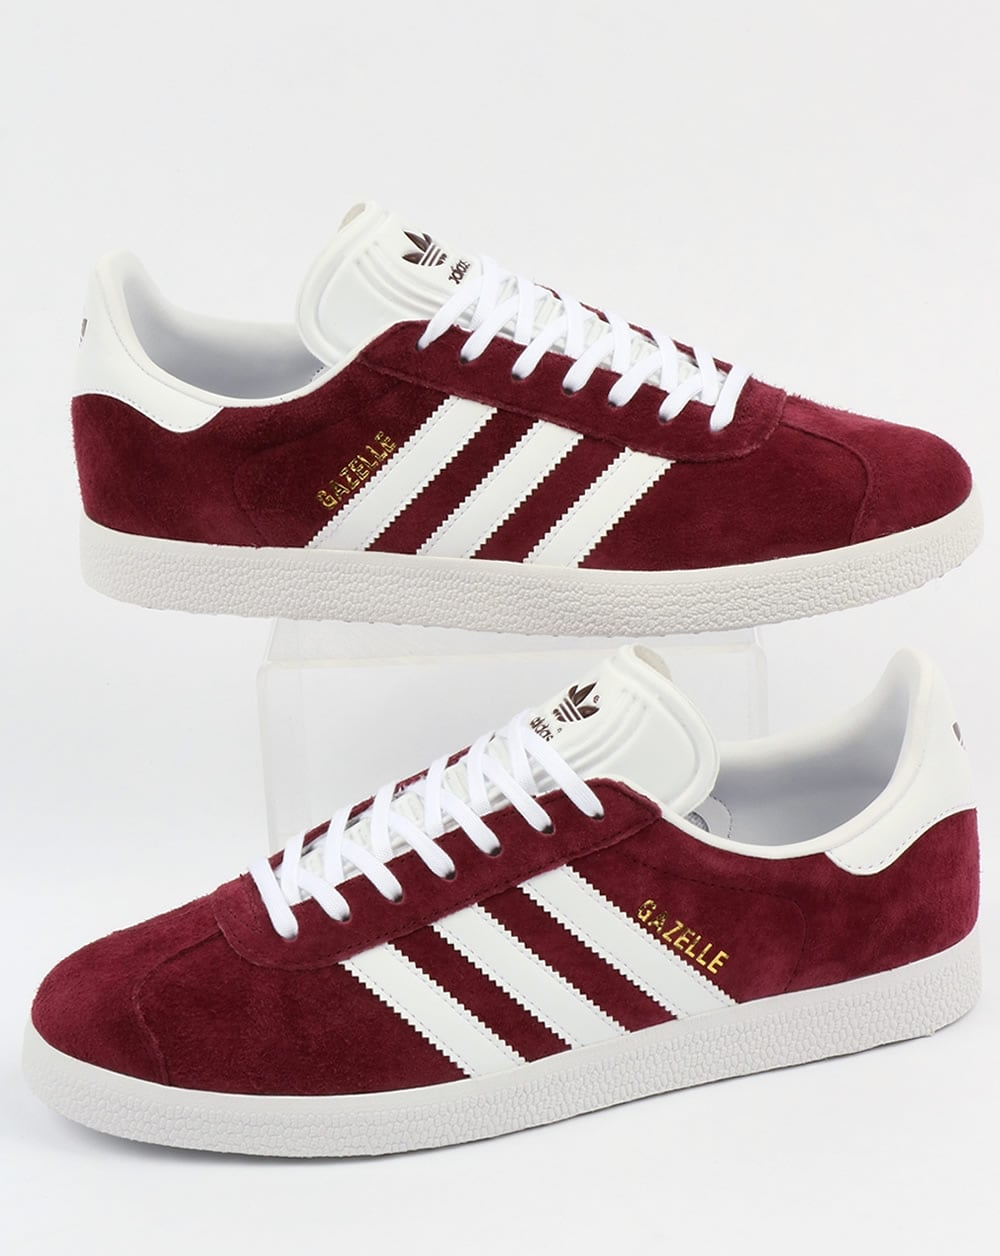 the latest bc835 89b2c adidas Trainers Adidas Gazelle Trainers MaroonWhite